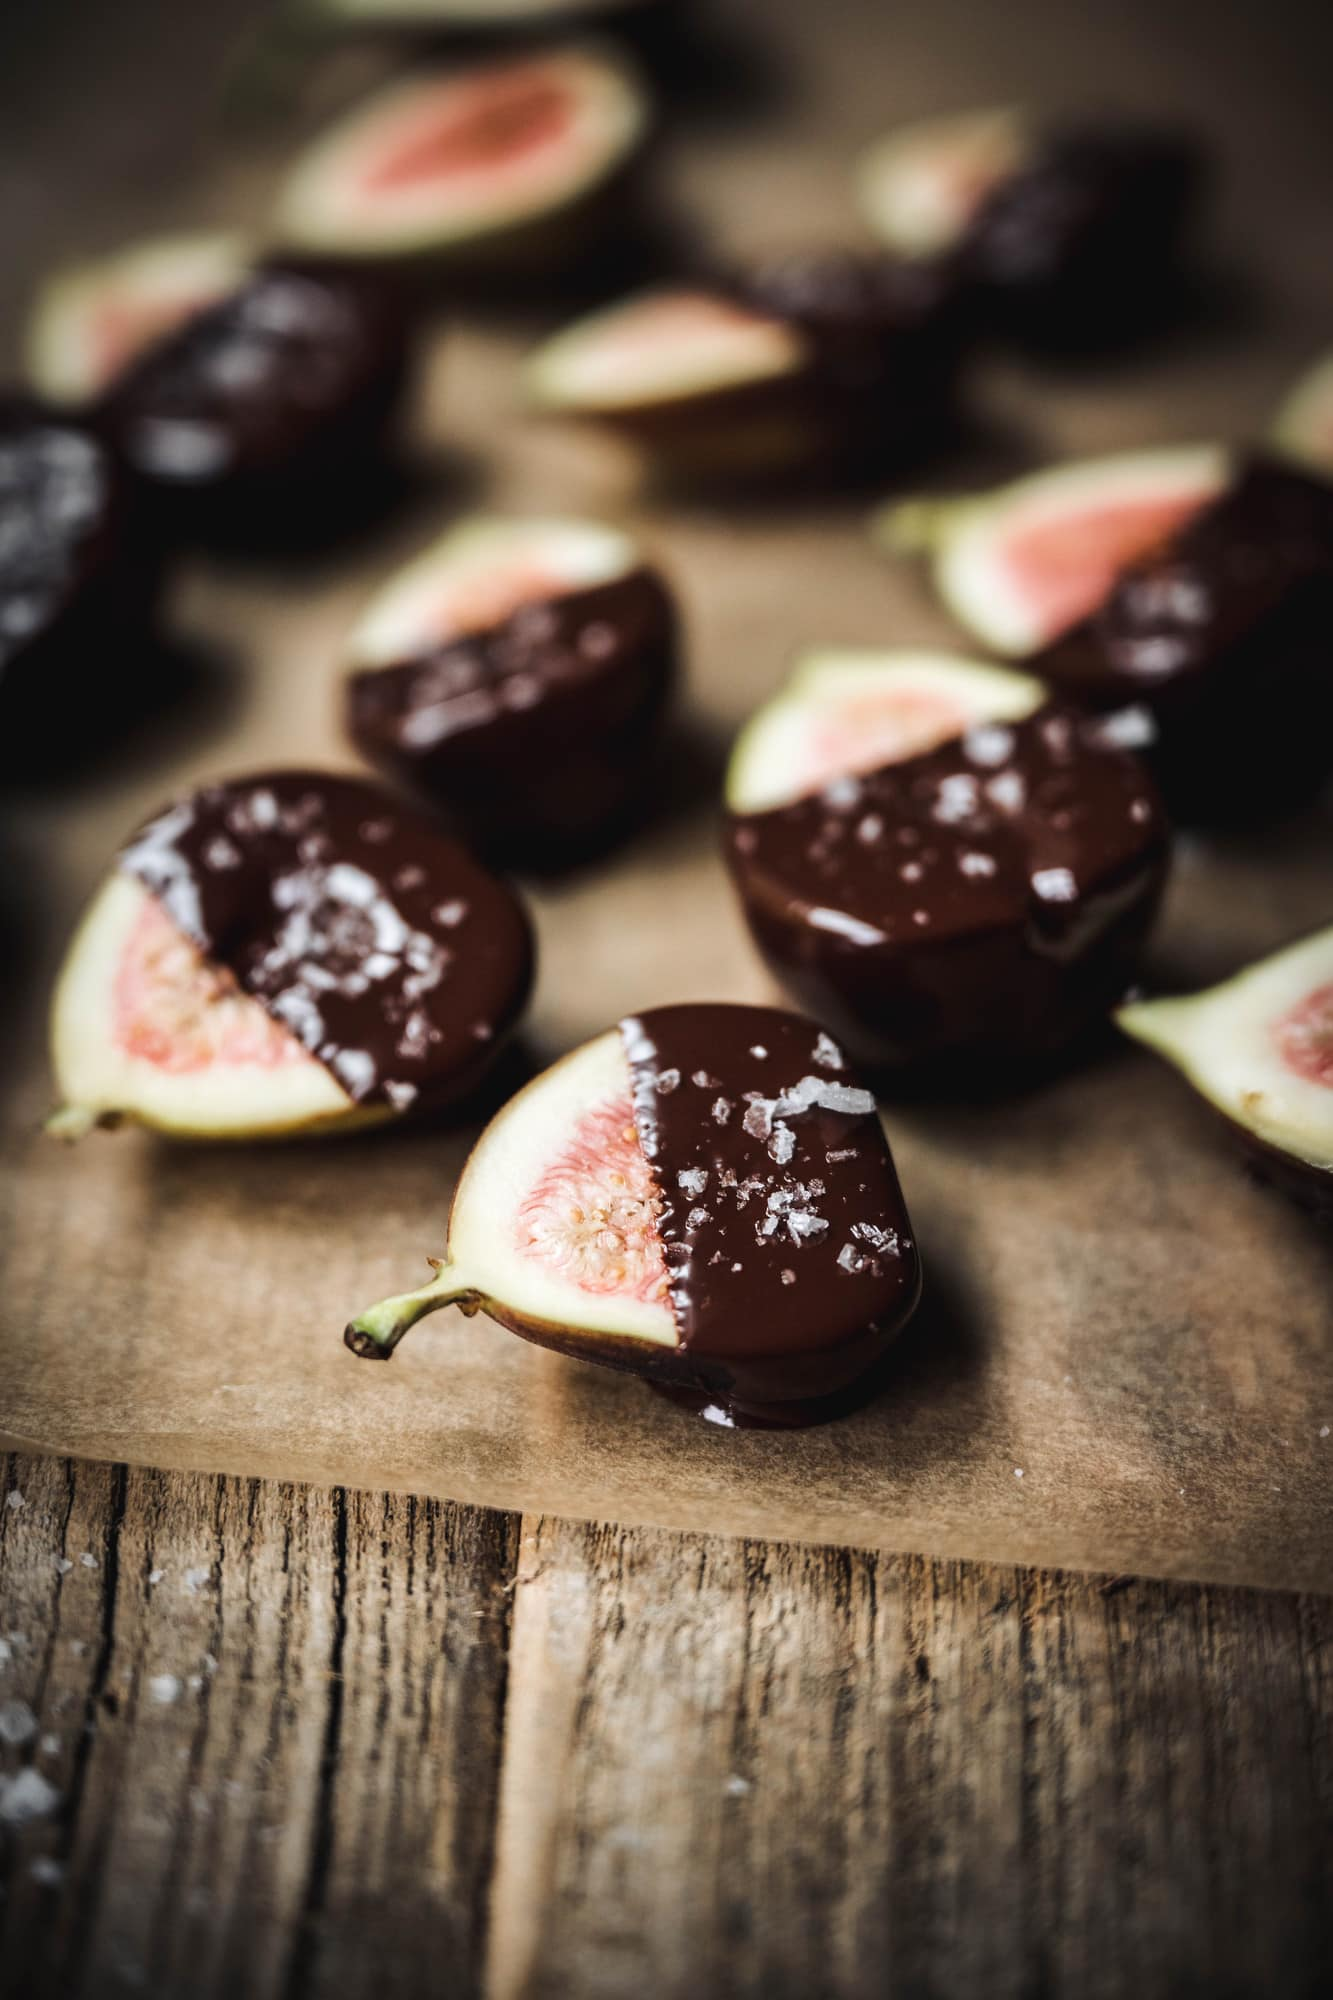 Side view of chocolate dipped figs with flaky sea salt